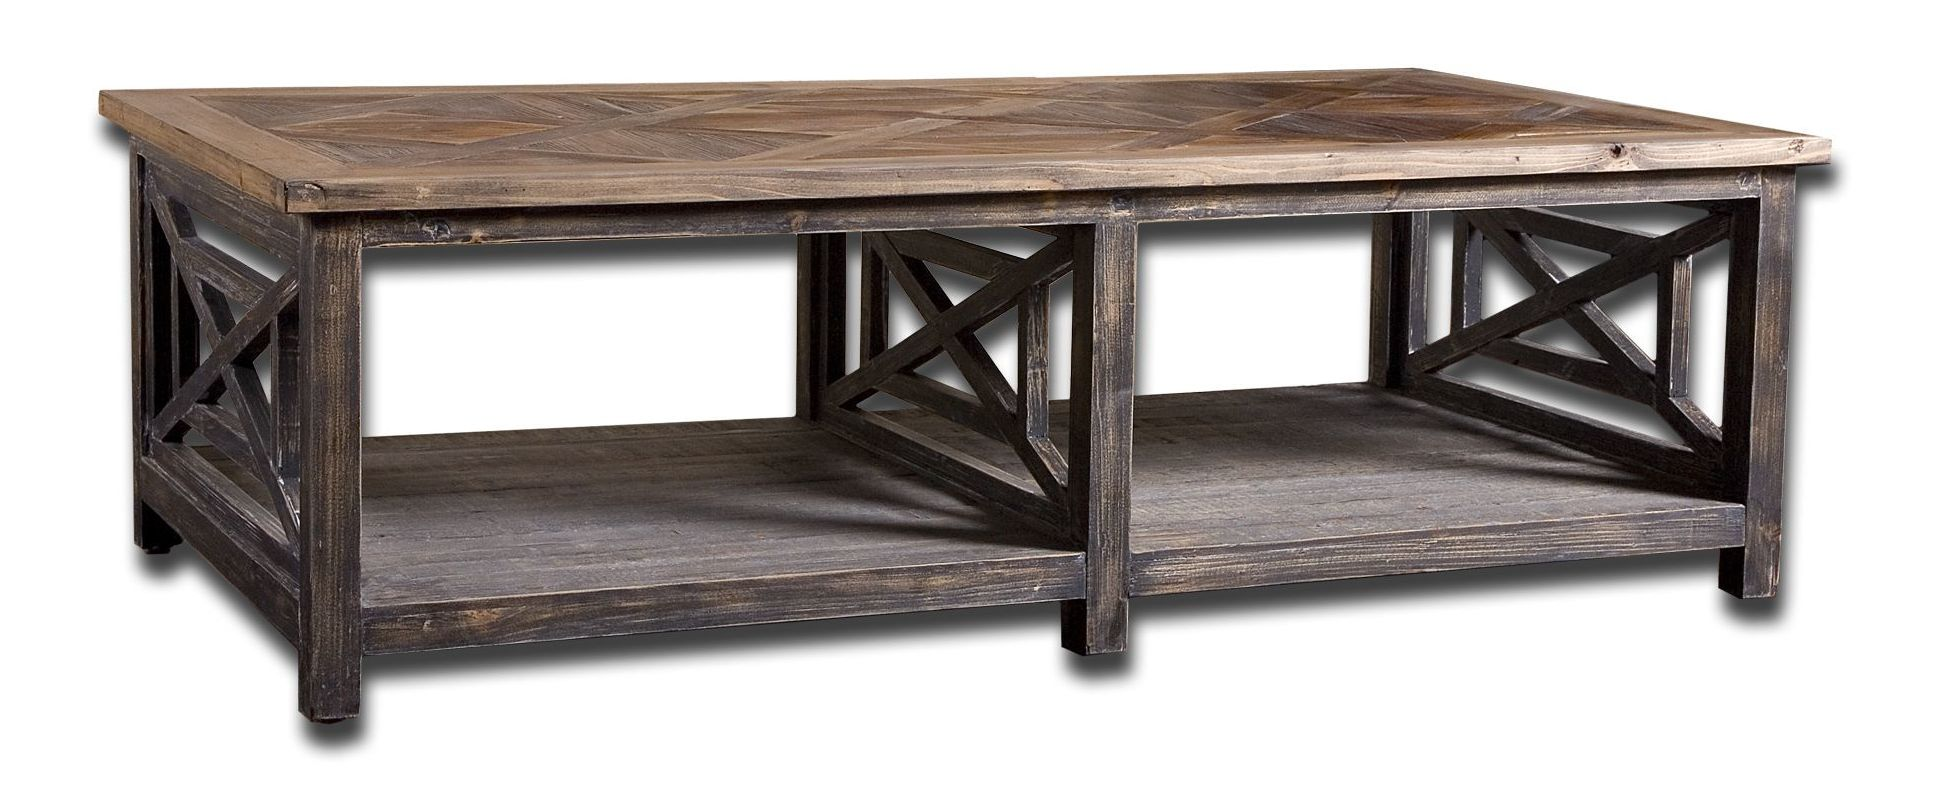 Uttermost 24264 Spiro Cocktail Table Natural Wood Furniture Coffee